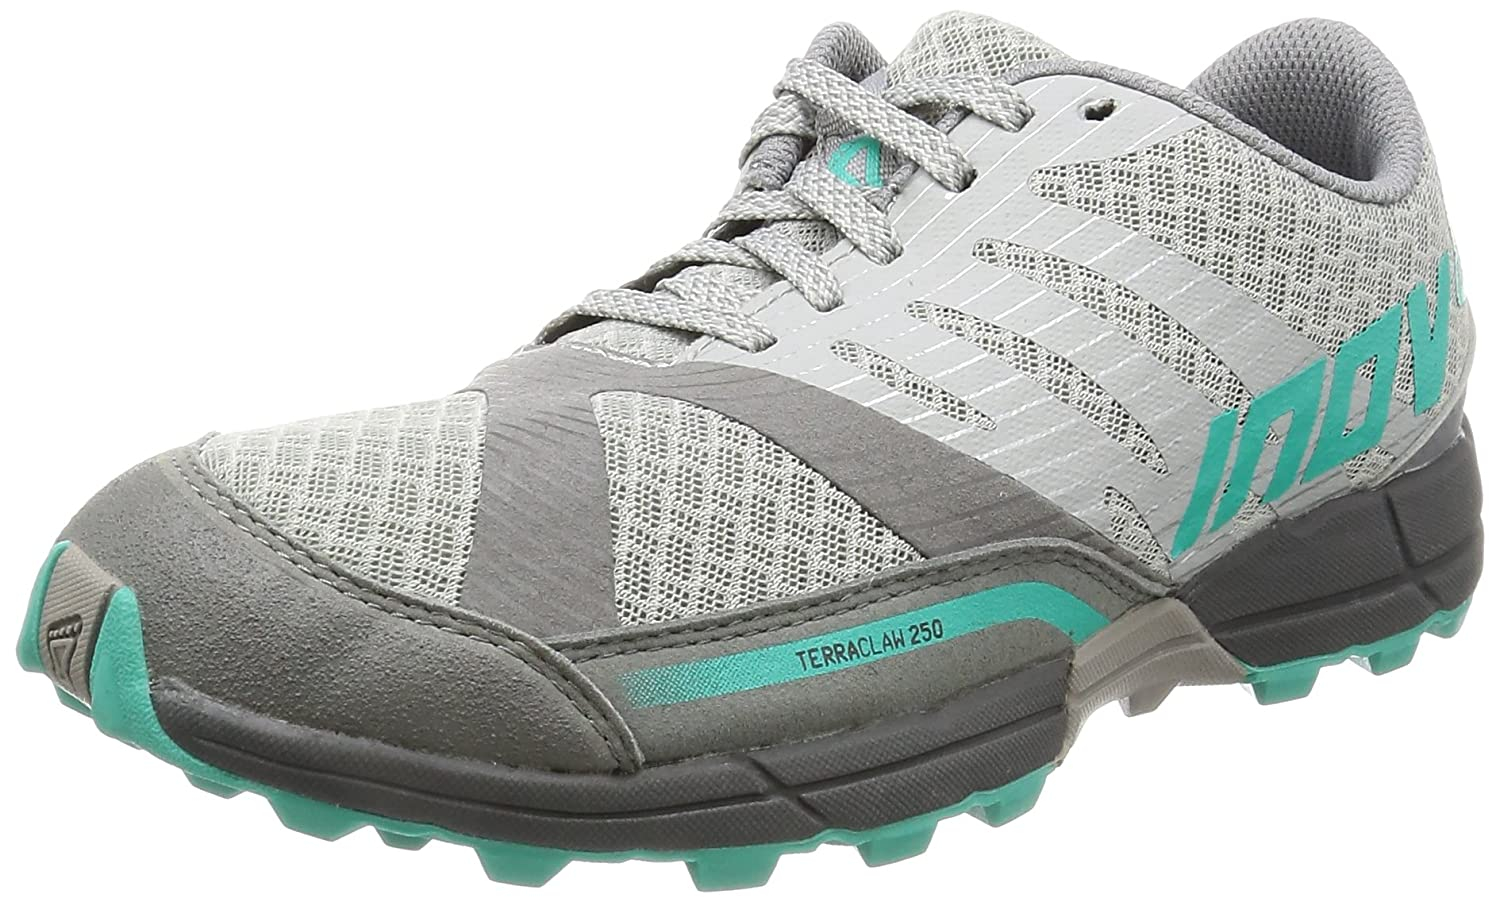 Inov8 Terraclaw 250 Chill Women's Chaussure Course Trial - SS17 INOV-8